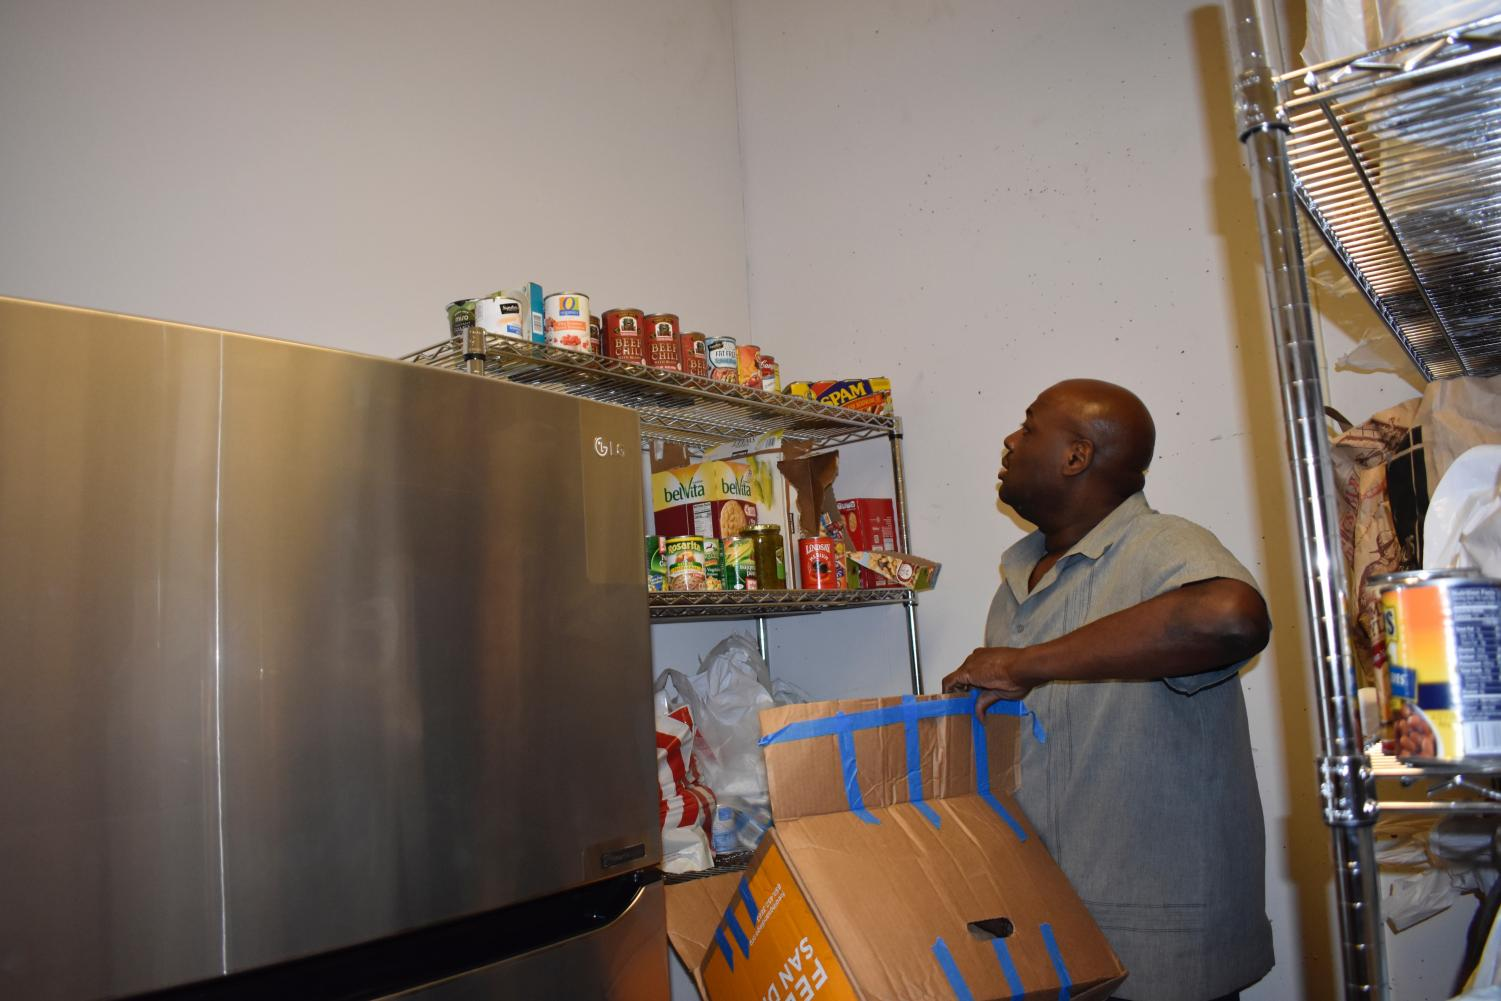 Dr. Coker moves food into multiple buildings for students who may be going hungry. They can come get food at the pantries for free.